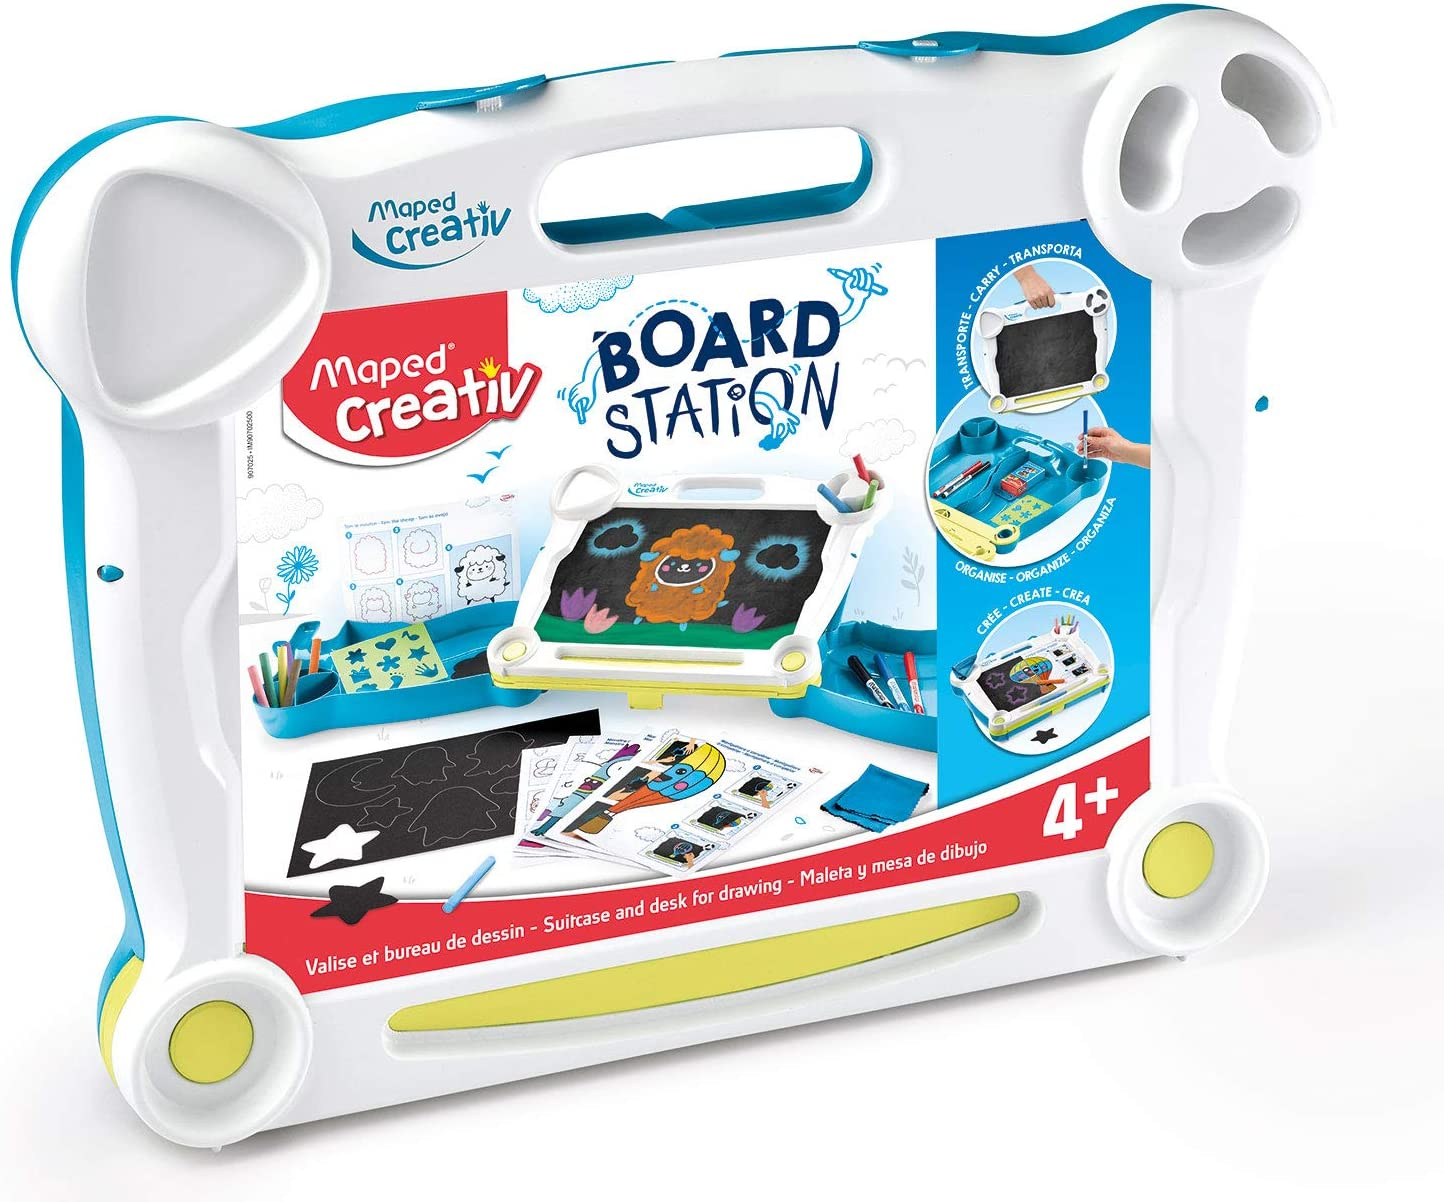 Maped Creativ Erasable Drawing Case Sale Activity Latest item and Board